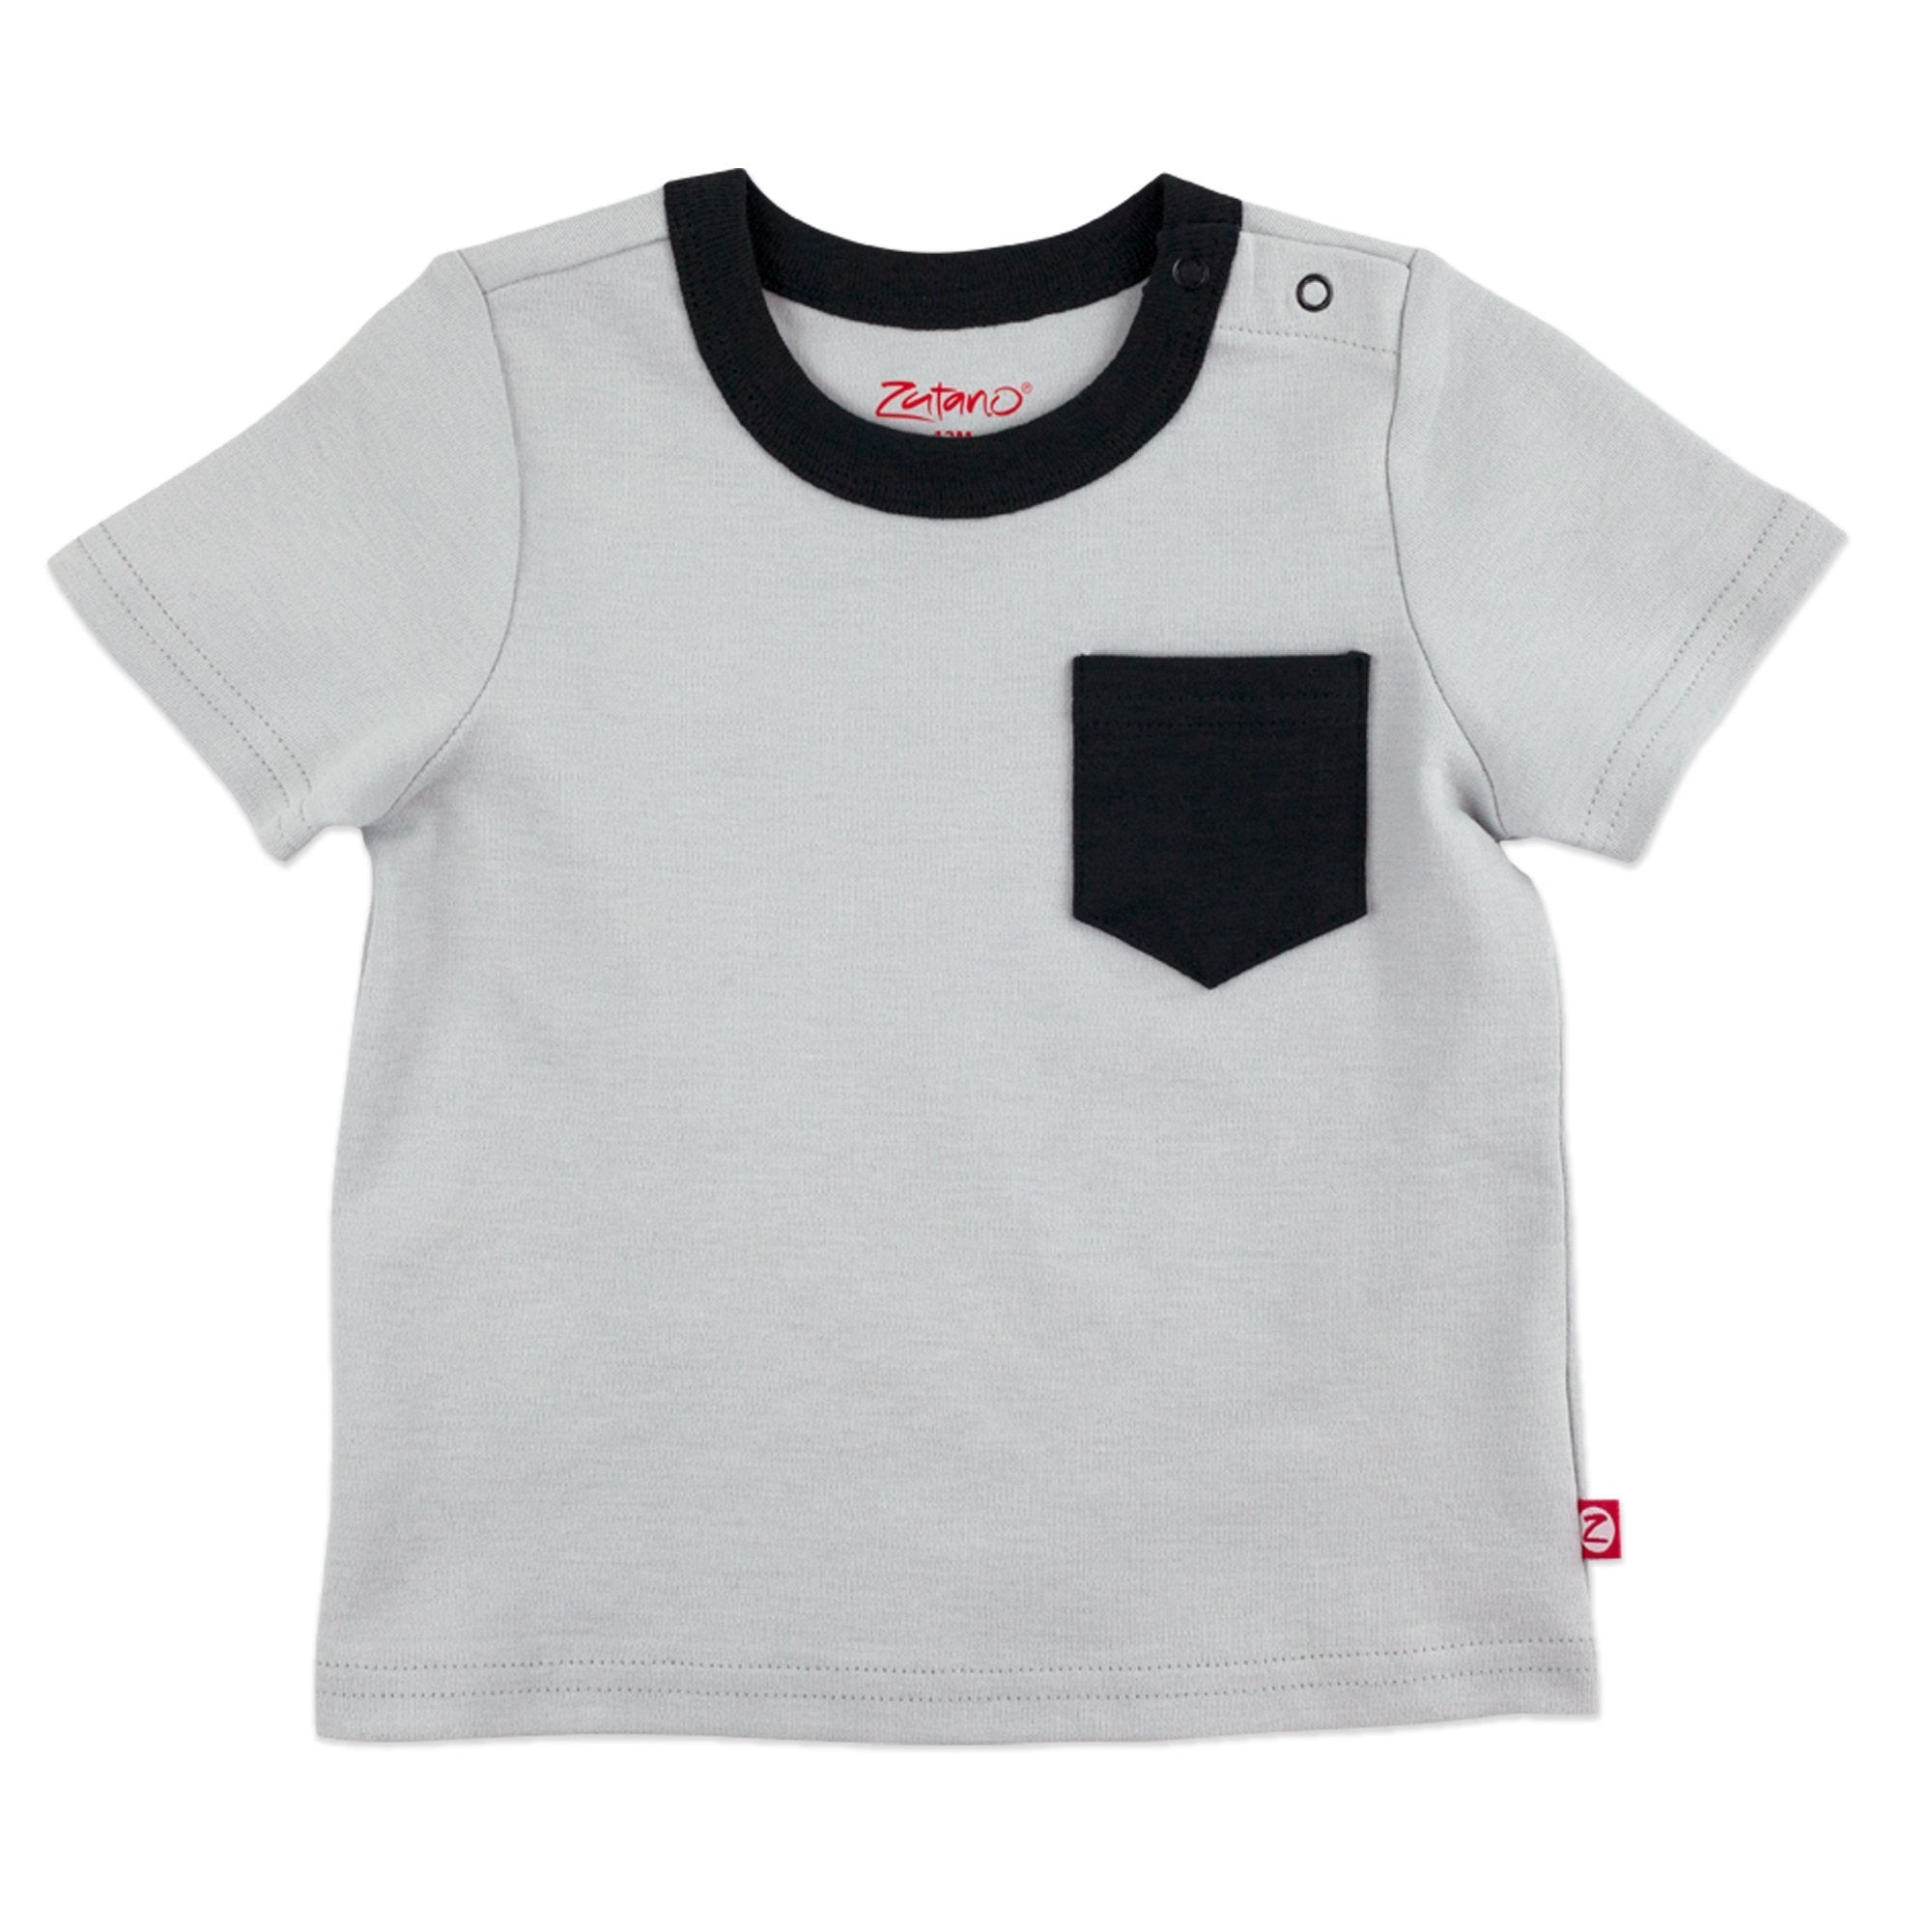 Ridiculously Good Looking Tee Really 6m 24m Really